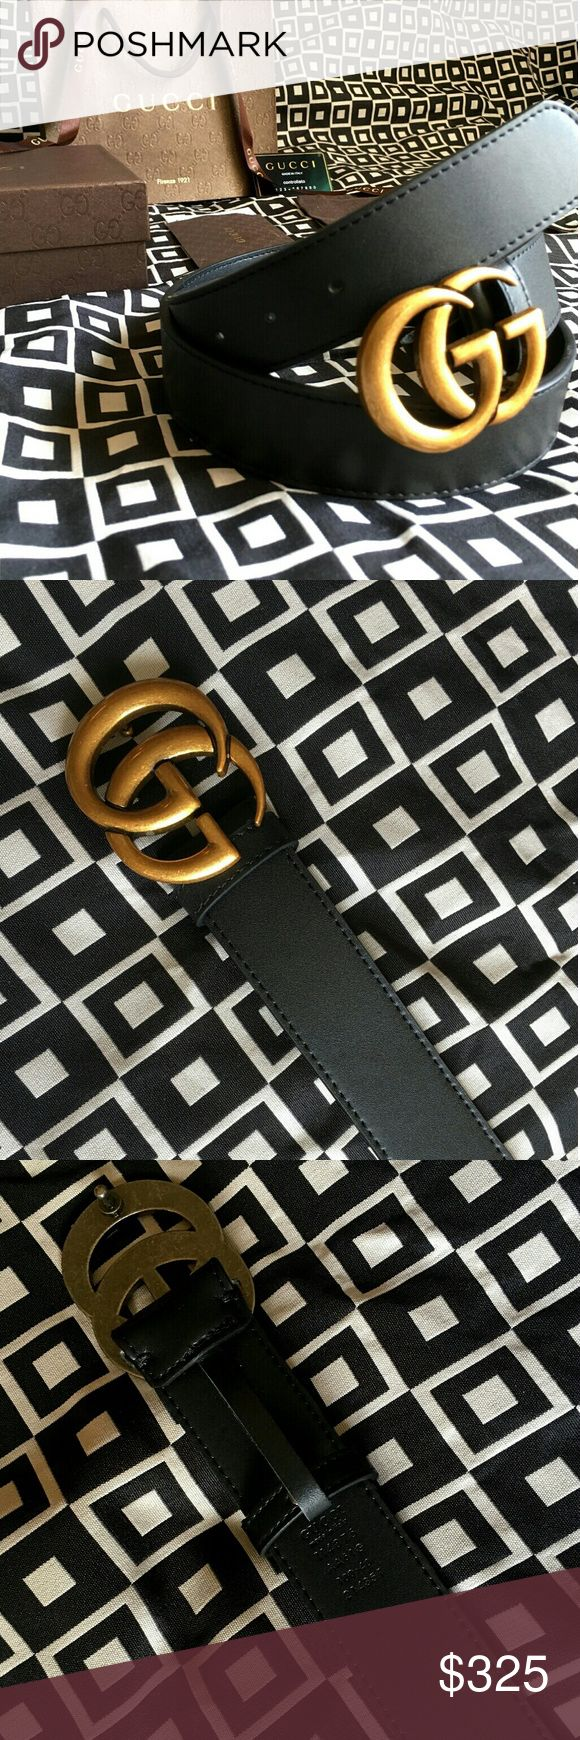 """Gucci GG Belt!!! Gucci GG Belt W/ Antique Brass Double G Buckle!!!  Brand New!!!  Size Available - 32"""", 34"""", 36"""", 38"""", 40"""", 42"""", 44""""!!!  Includes Gucci Belt, Gift Box, Dust Bag, Ribbon, Etc!!!  Great Gift Idea!!!  Last Available!!!  Check My Listings For Other Great Items!!!             Ignore: Gucci gg monogram casual dress belts men's women's guccissma leather monogram web tiger bee embossed panther wool cable knit blooms supreme print angry cat ufo dragon studded snake double g Gucci…"""